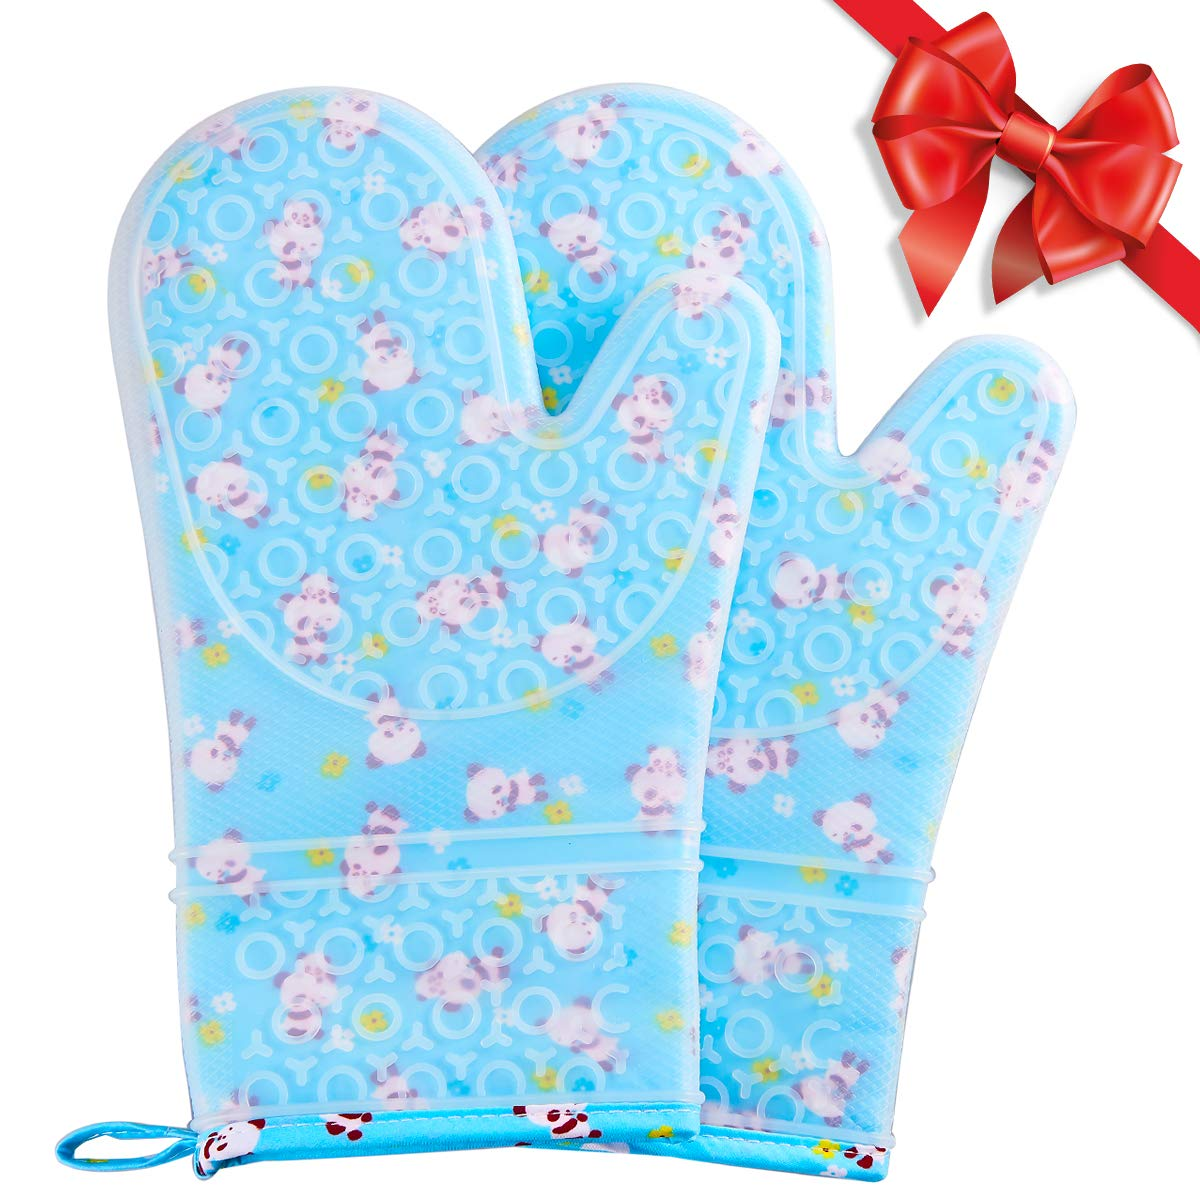 FAVIA 1 Pair Non Slip Silicone Oven Mitts with Printing Cotton Lining Extra Long Gloves for Kitchen Cooking Baking Heat Resistant Up to 480℉ 250℃ Waterproof BPA Free (Medium, Blue Base with Panda)